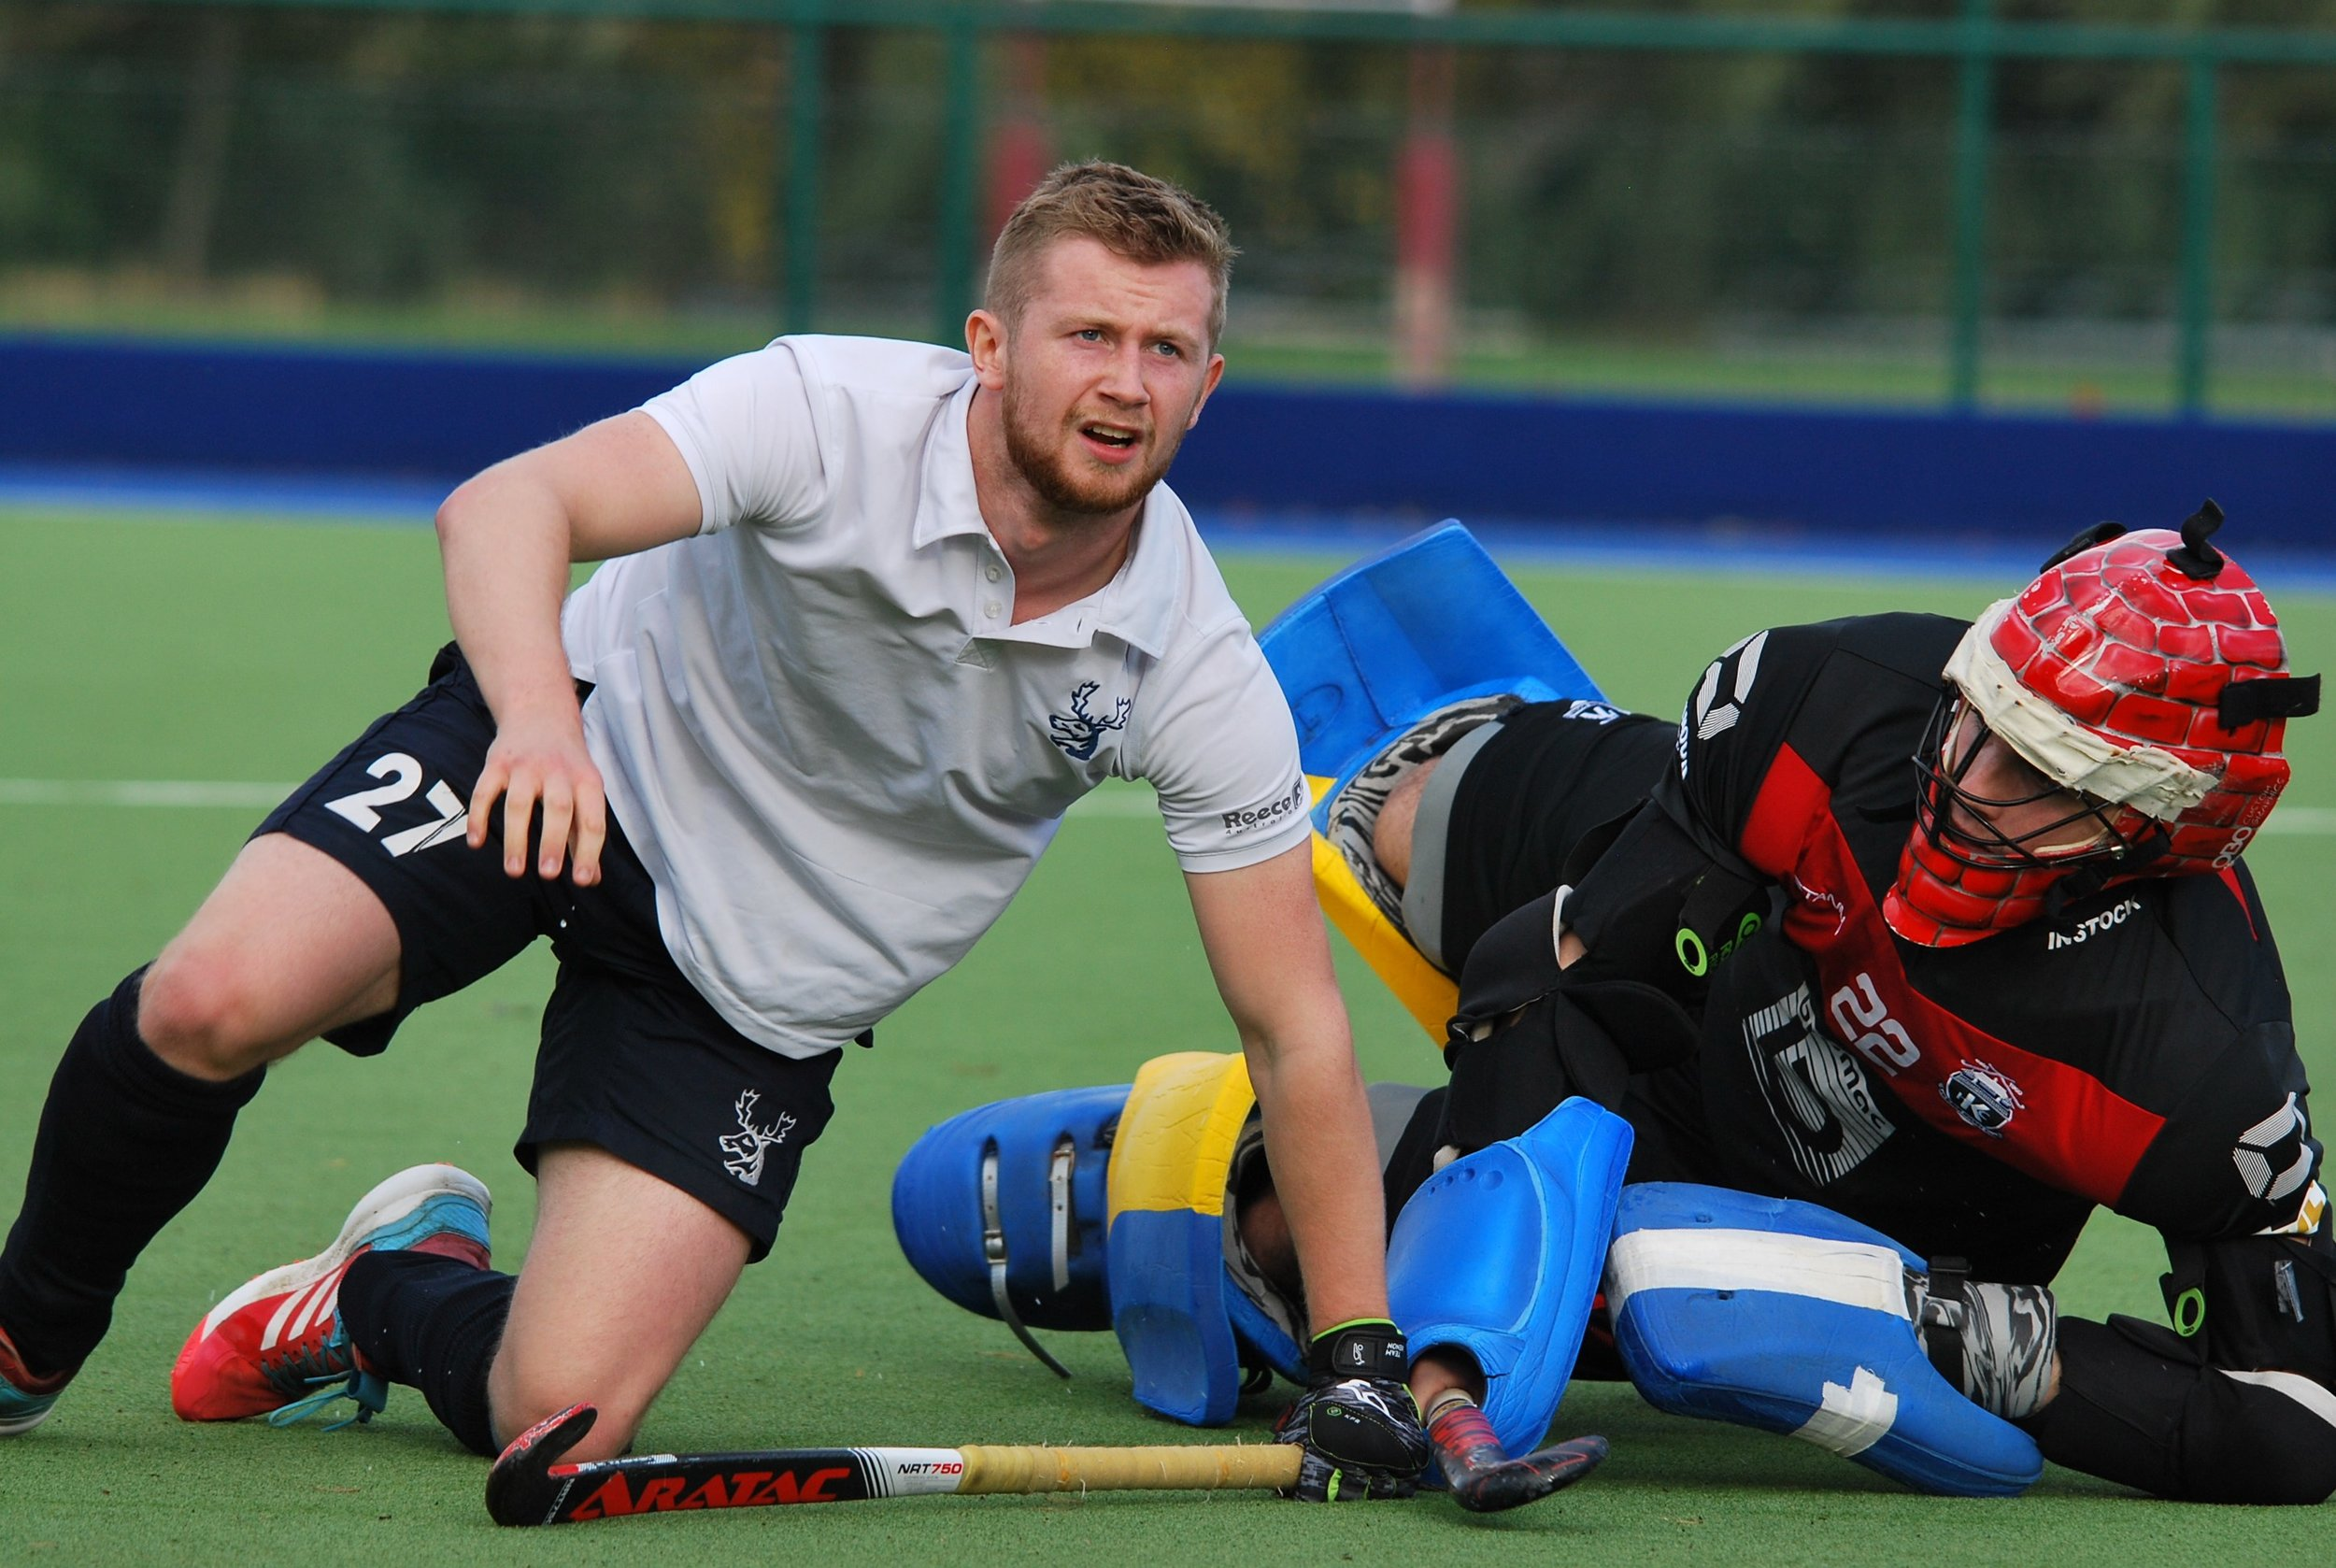 Luke Cranney   Luke is a current Senior Scotland International and plays for Grove Menzieshill. Luke has incredible speed and lightning quick hands.  He has a fantastic ability on his reverse stick, and has shown himself to be a world class goal scorer.